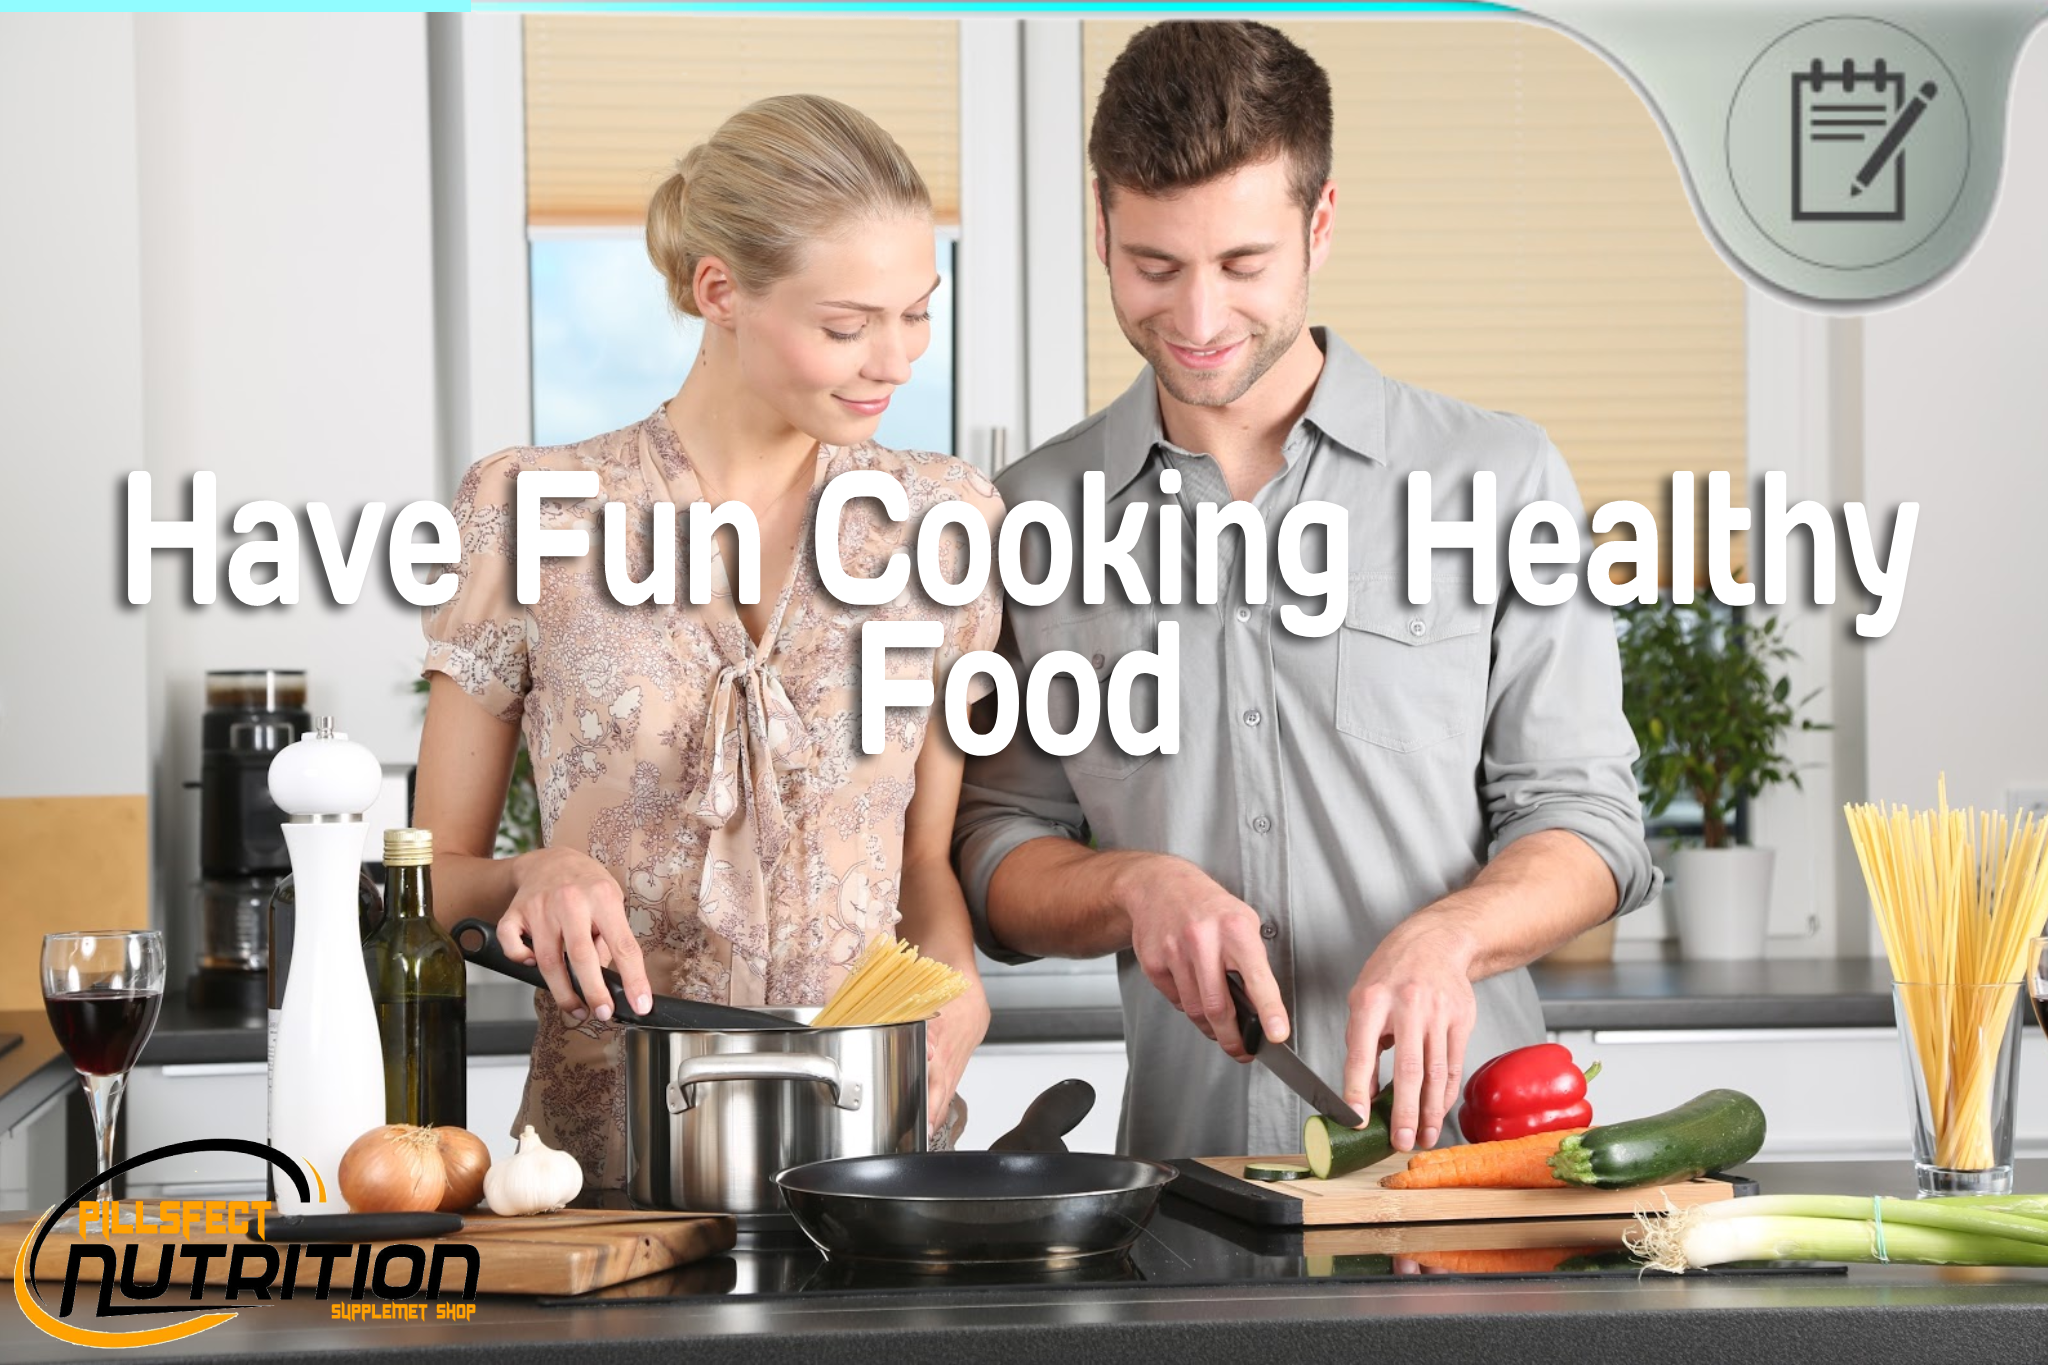 Have Fun Cooking Healthy Food - What are Some Healthy Foods to Cook?